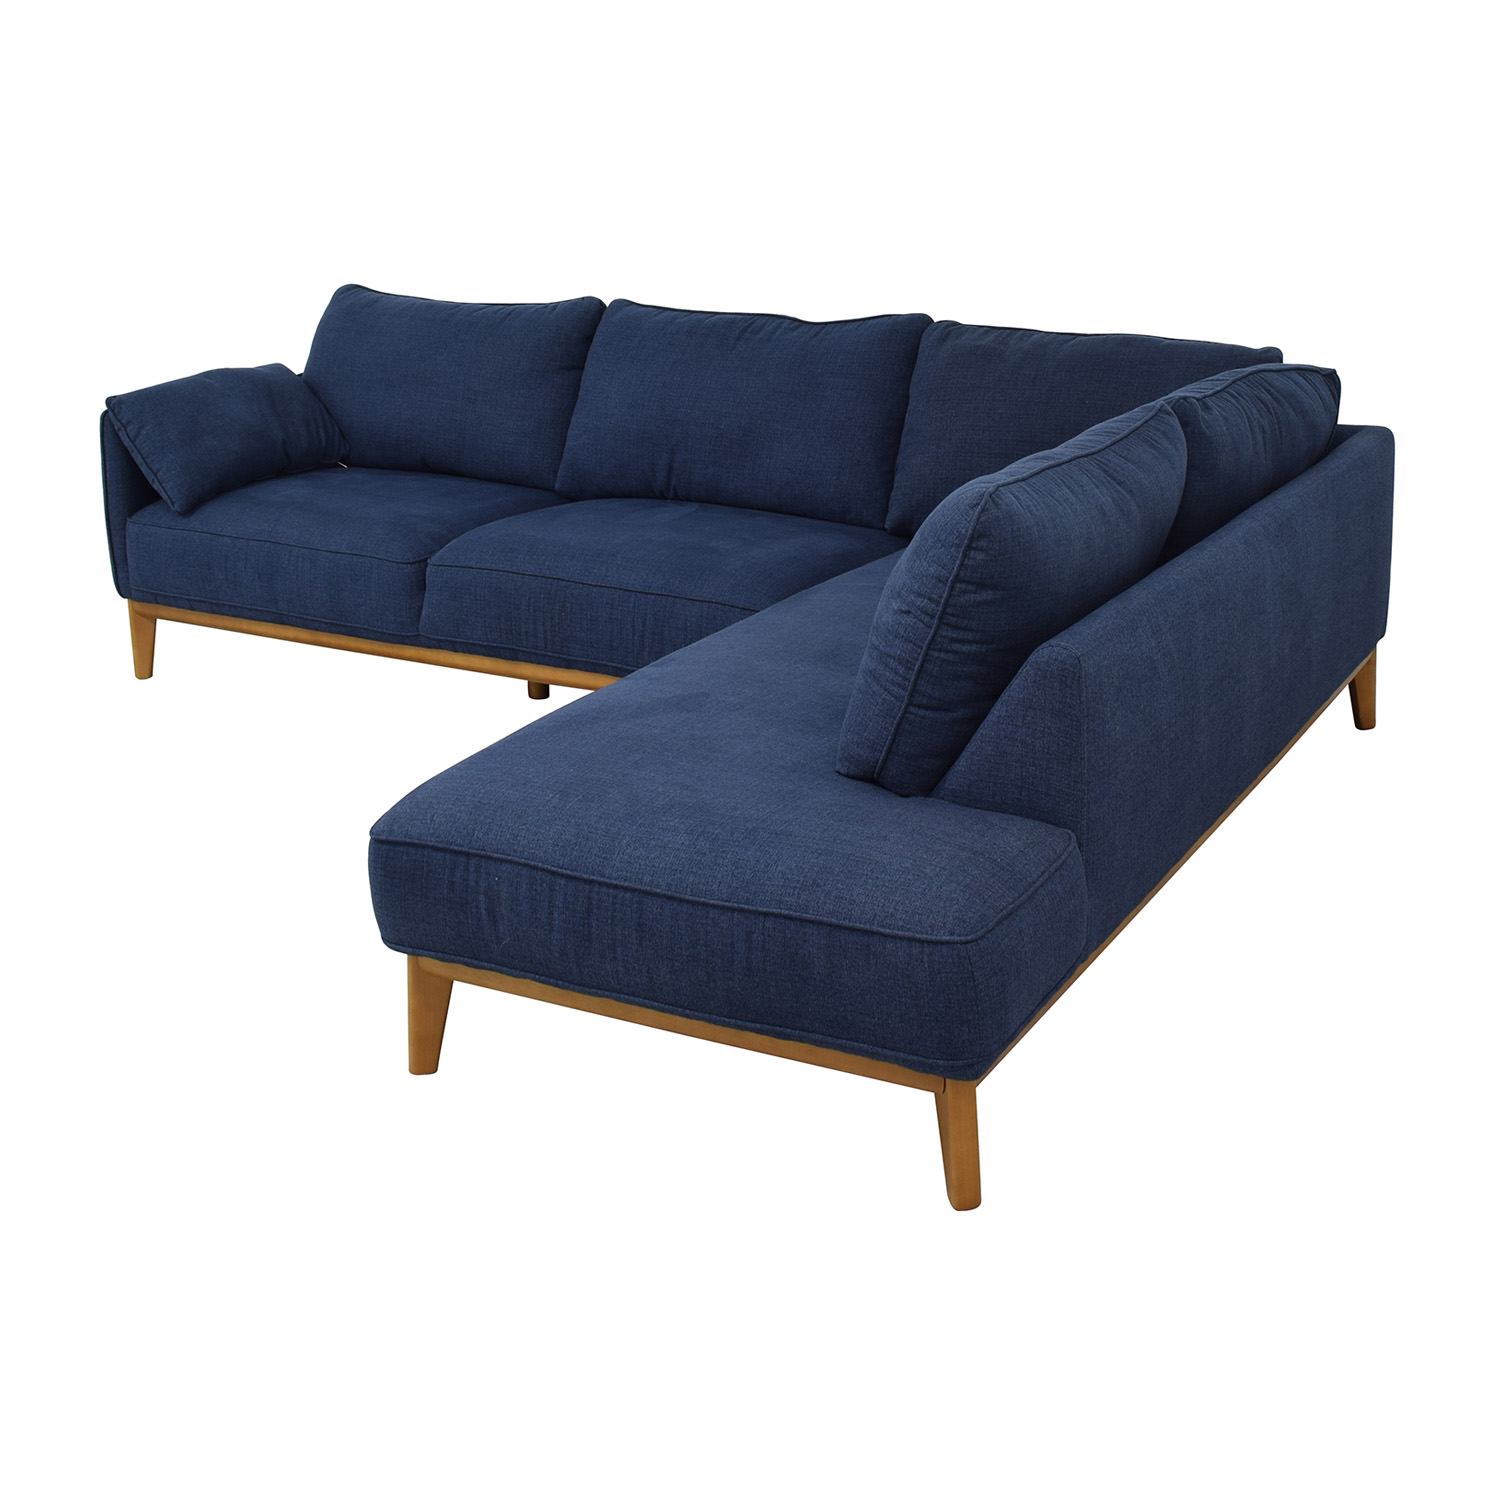 buy Macy's Sectional Sofa Macy's Sofas